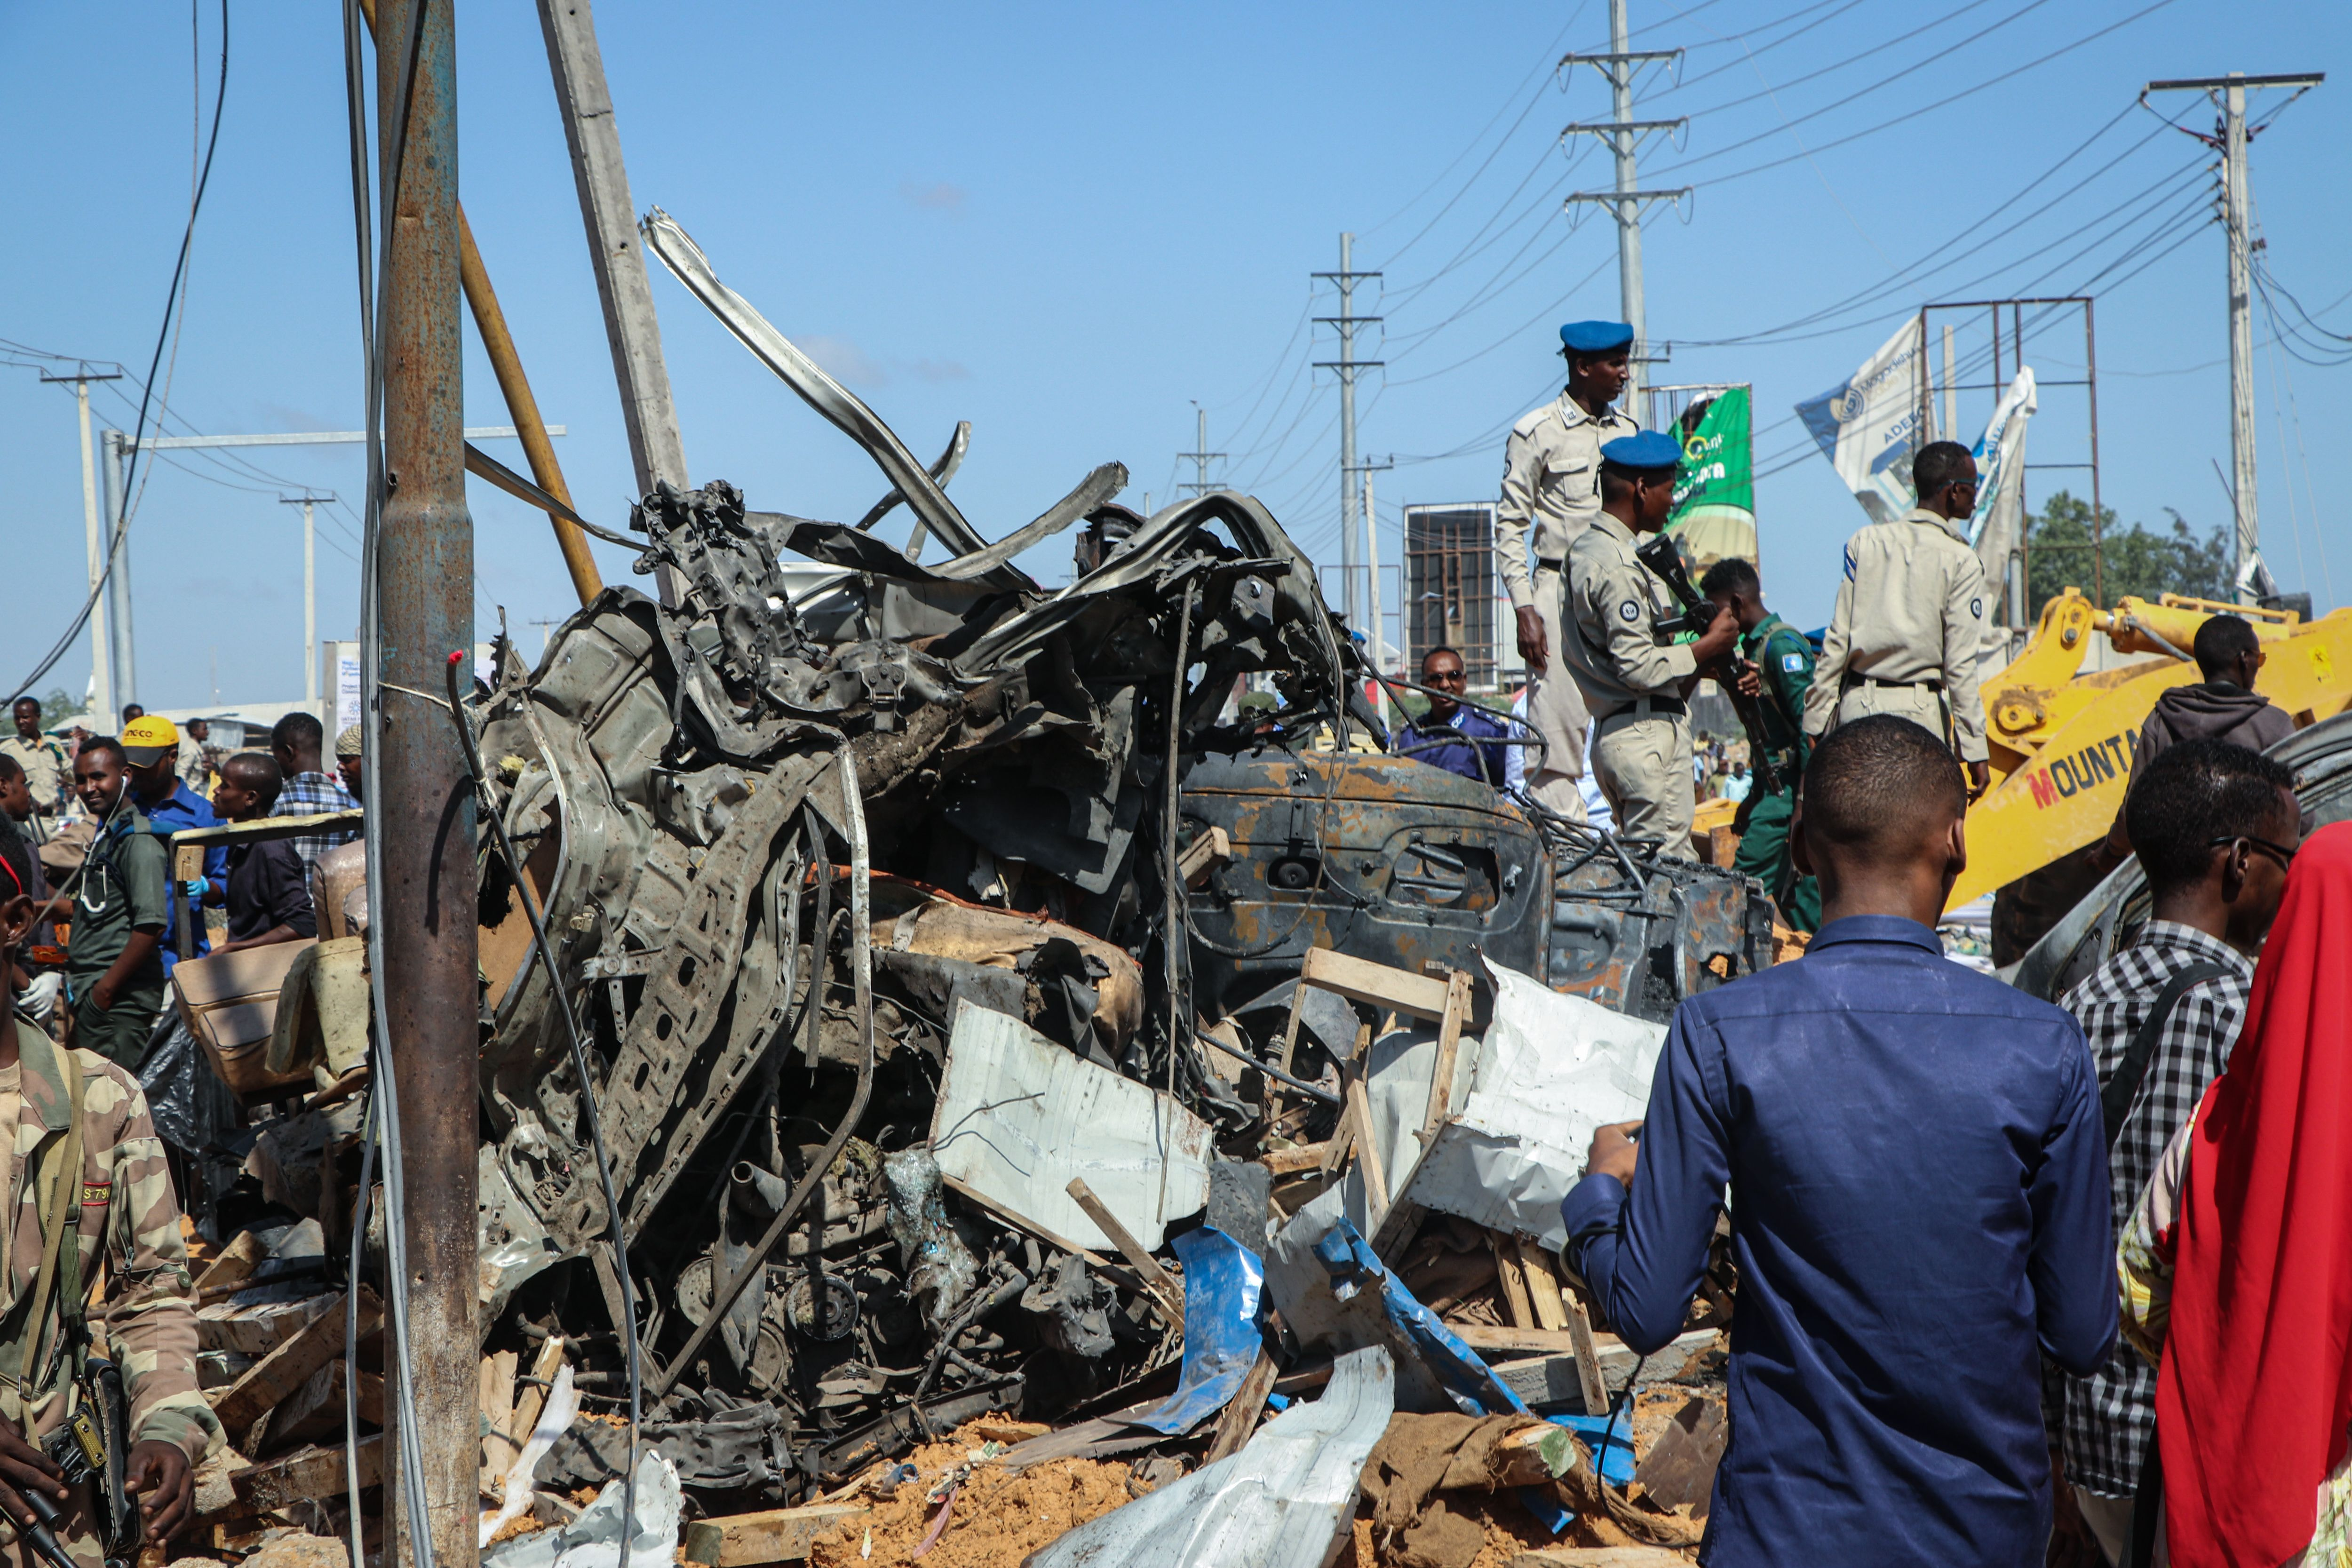 Wreckage in the aftermath of a truck bomb attack is seen in Mogadishu on Dec. 28, 2019.